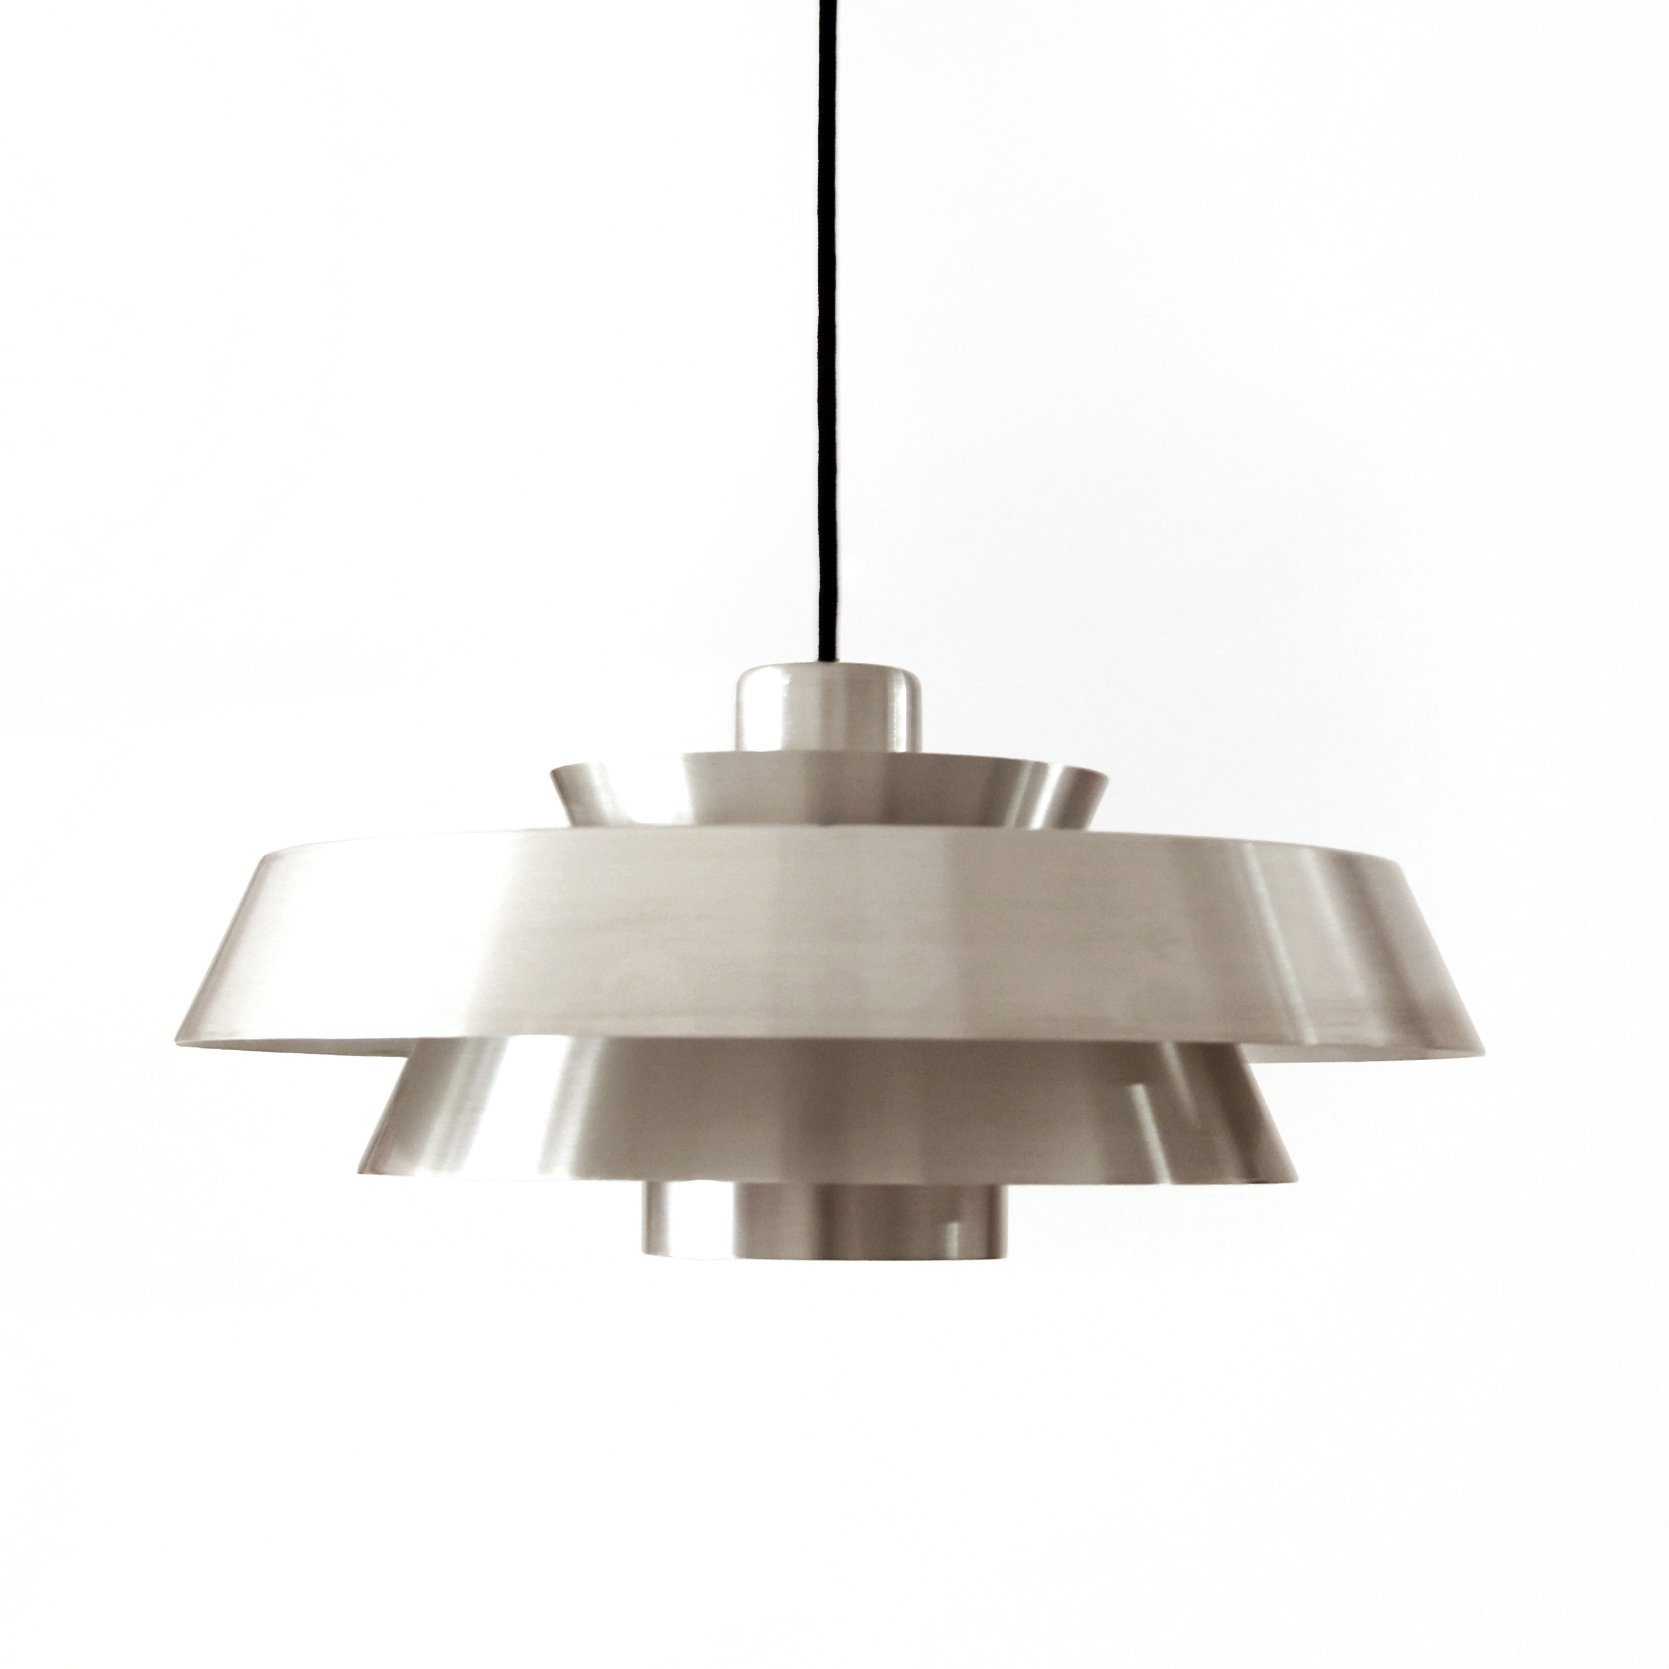 costa en ambient h general by architonic nova product light hr from lighting